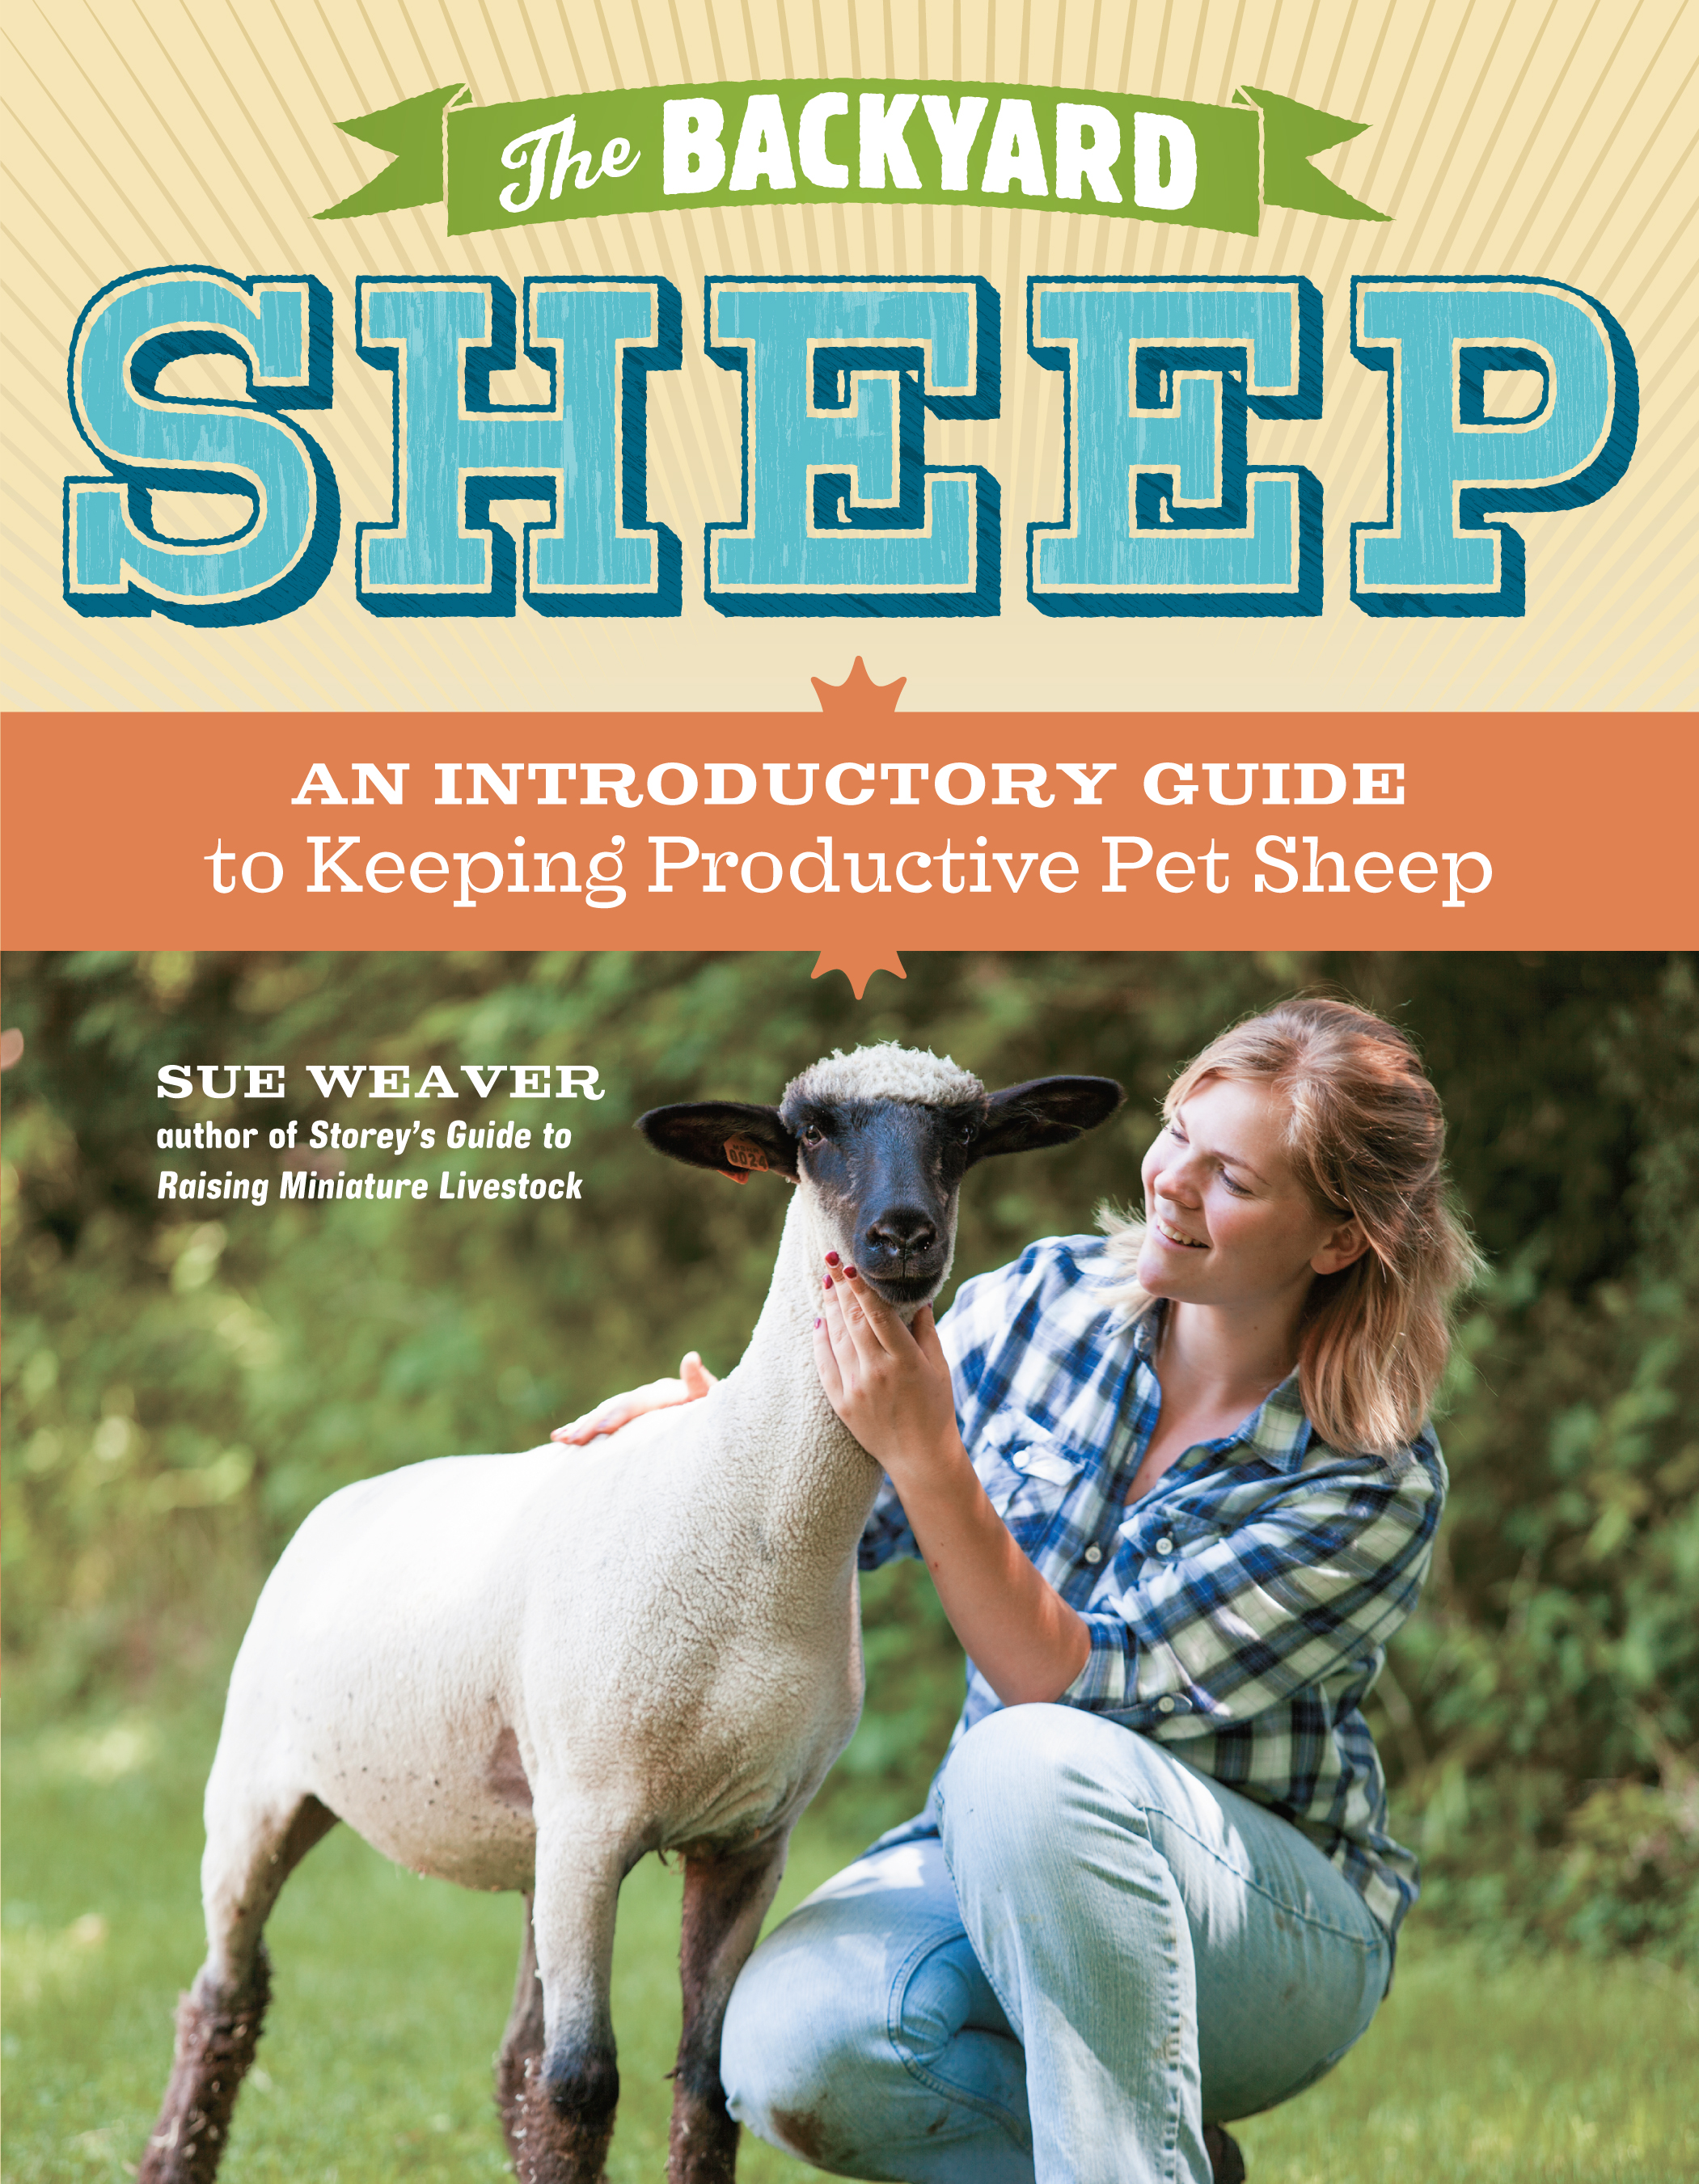 The Backyard Sheep An Introductory Guide to Keeping Productive Pet Sheep - Sue Weaver